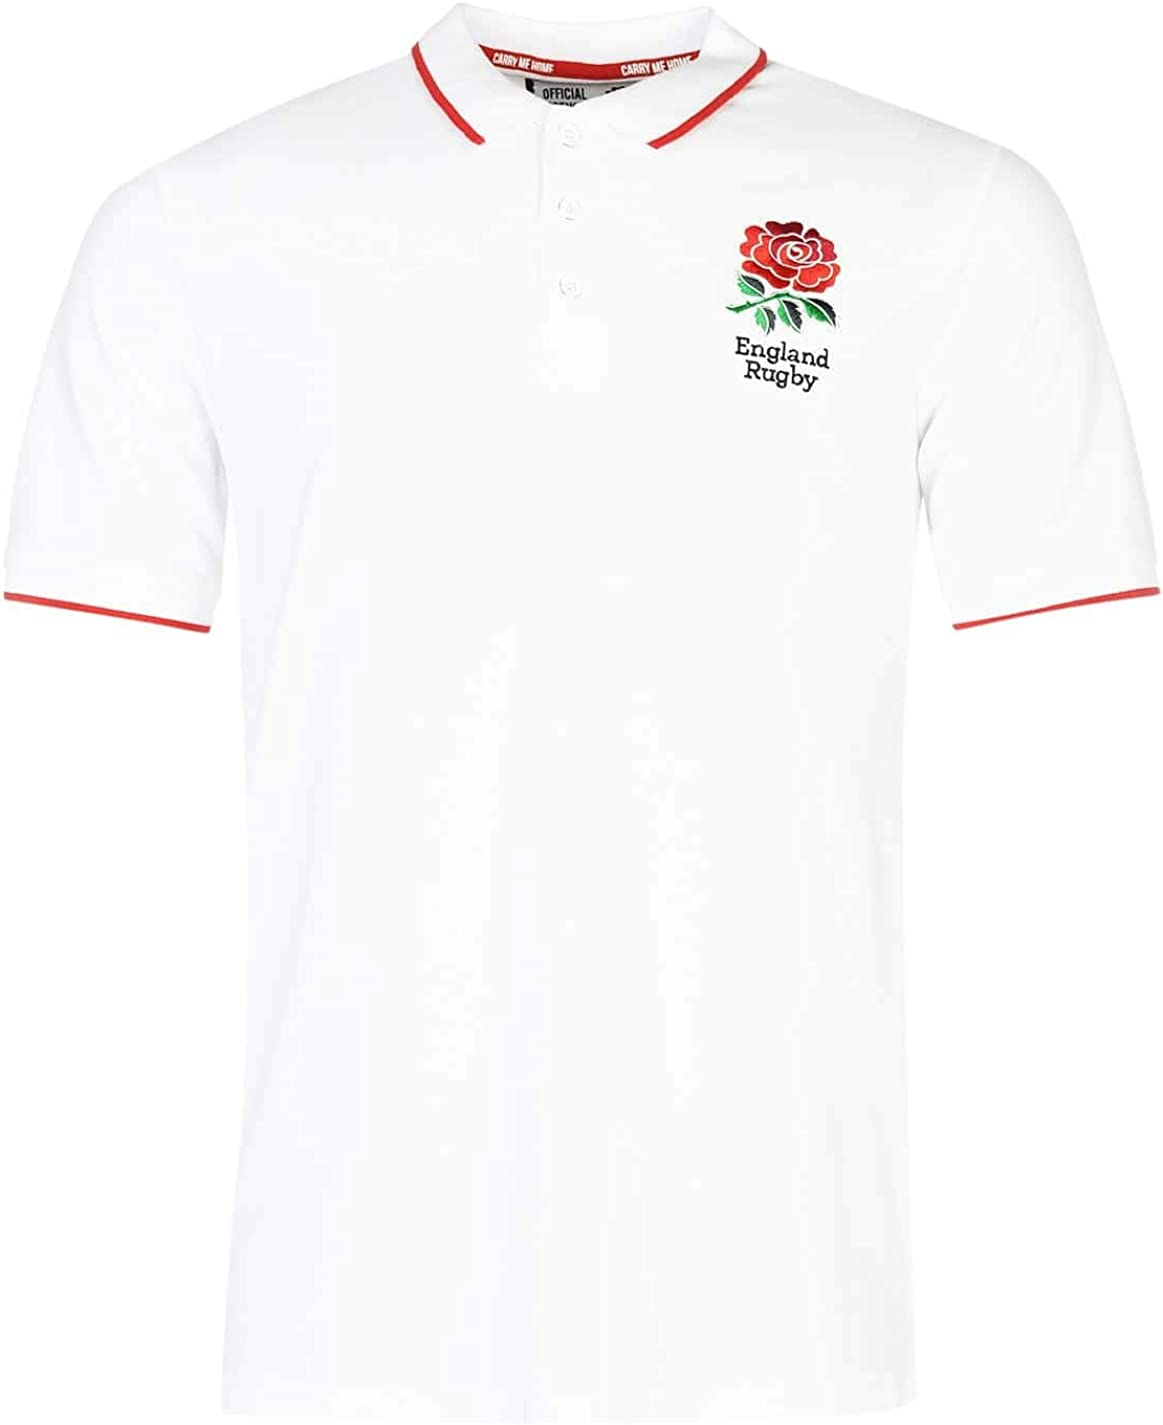 RFU Hombre England Rugby Core Polo Camisa Camiseta Ropa Deporte Running Entrenar